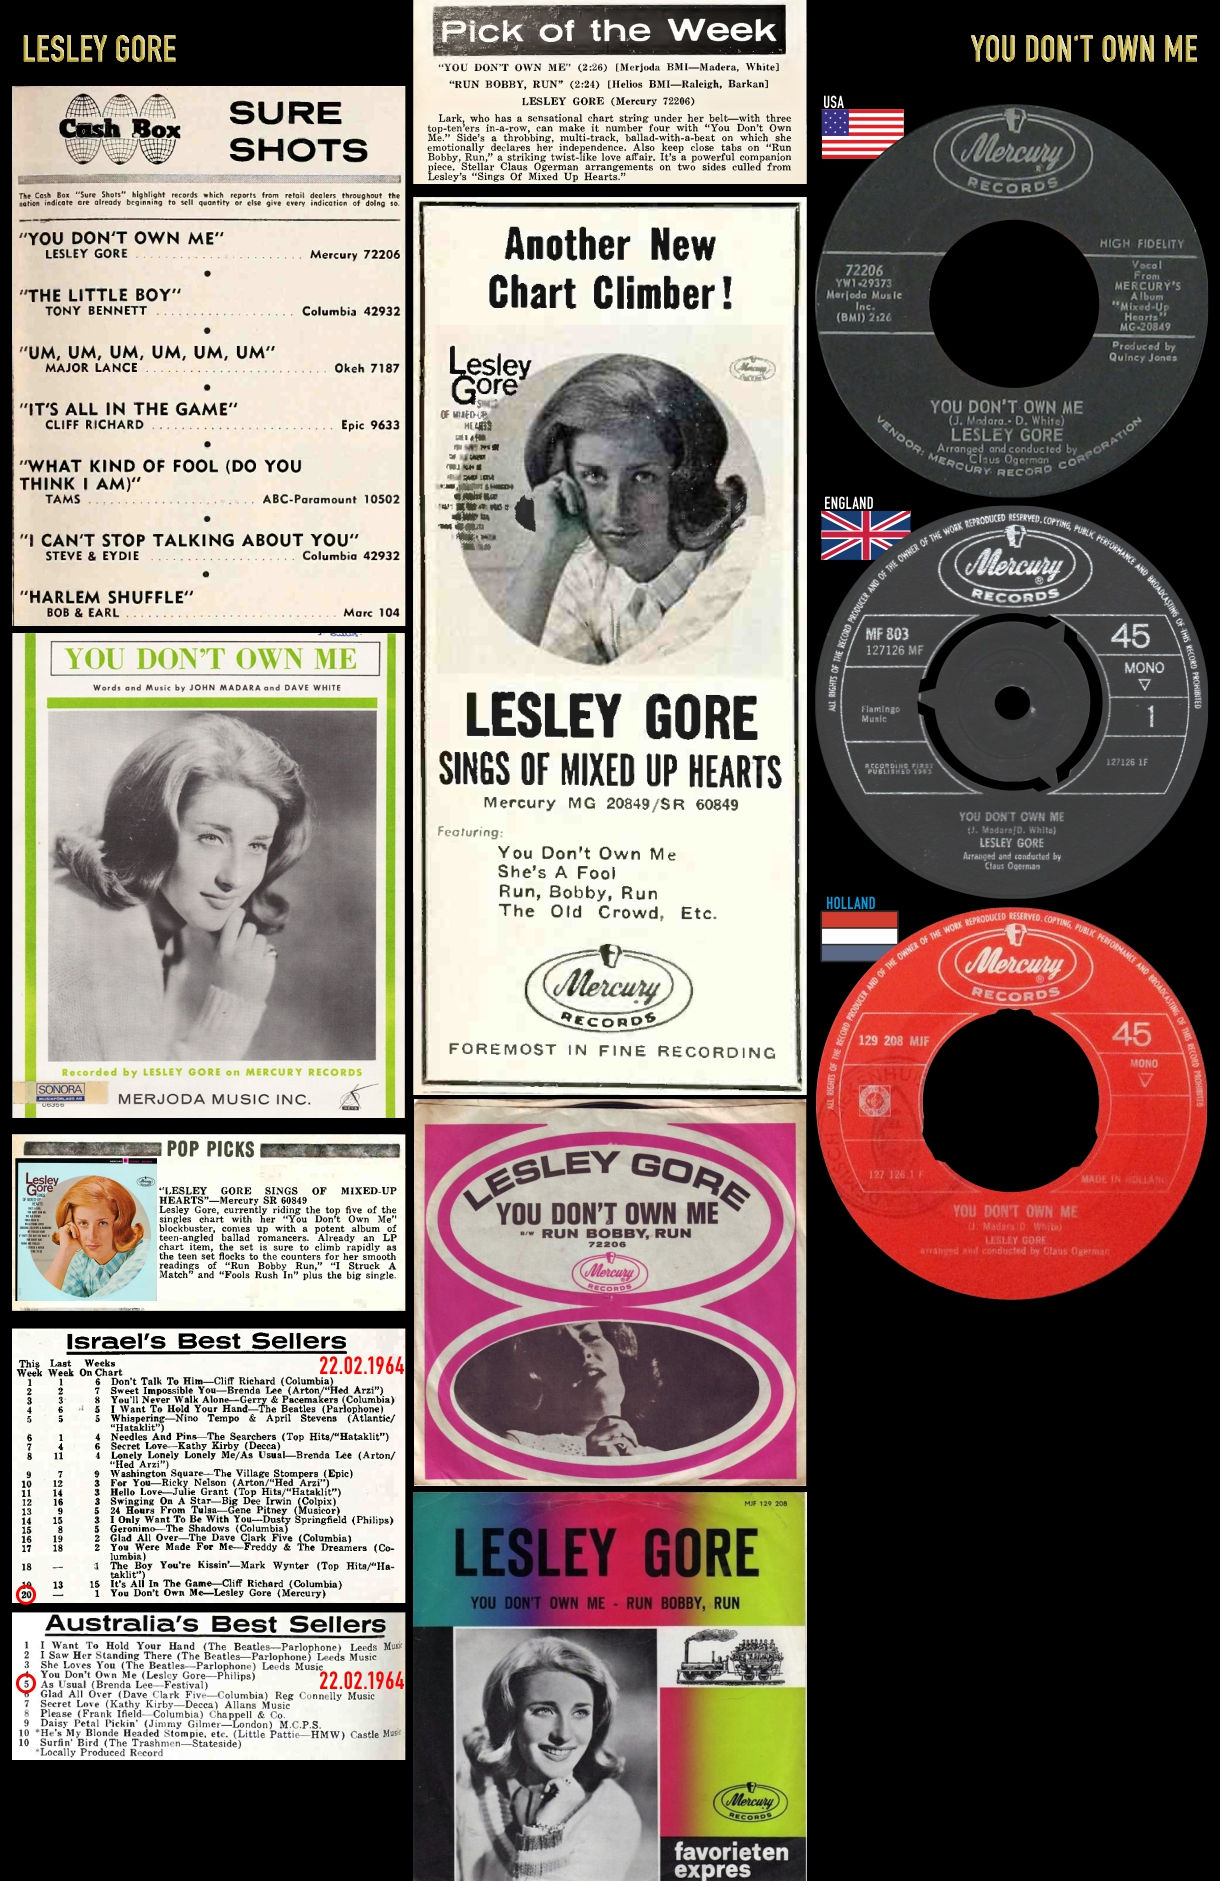 631228_Lesley Gore_You Don't Own Me